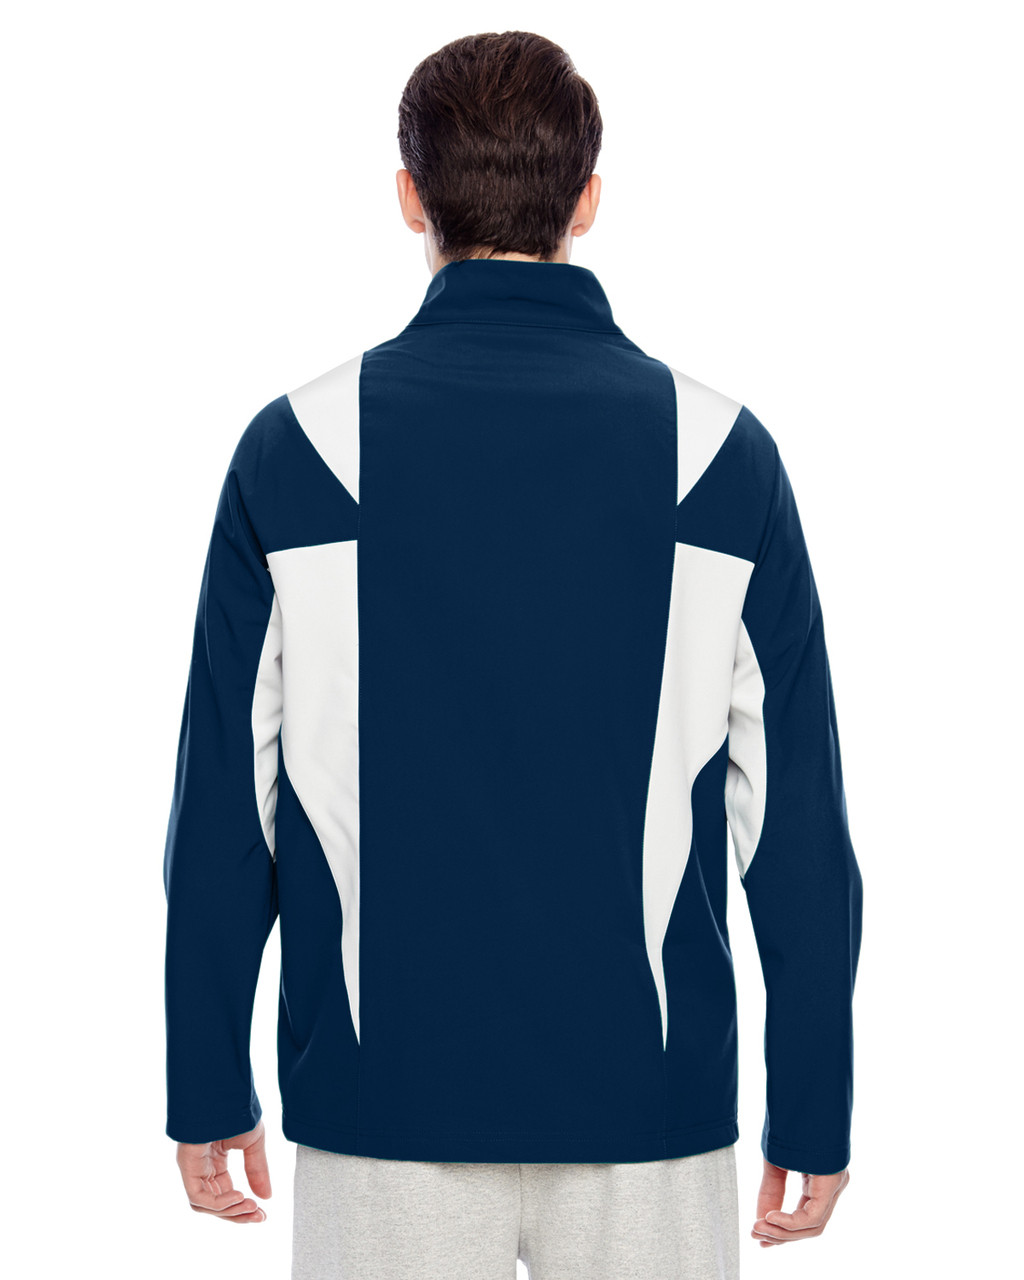 Sport Dark Navy/Sport Silver - Back, TT82 Team 365 Icon Colourblock Soft Shell Jacket  | BlankClothing.ca